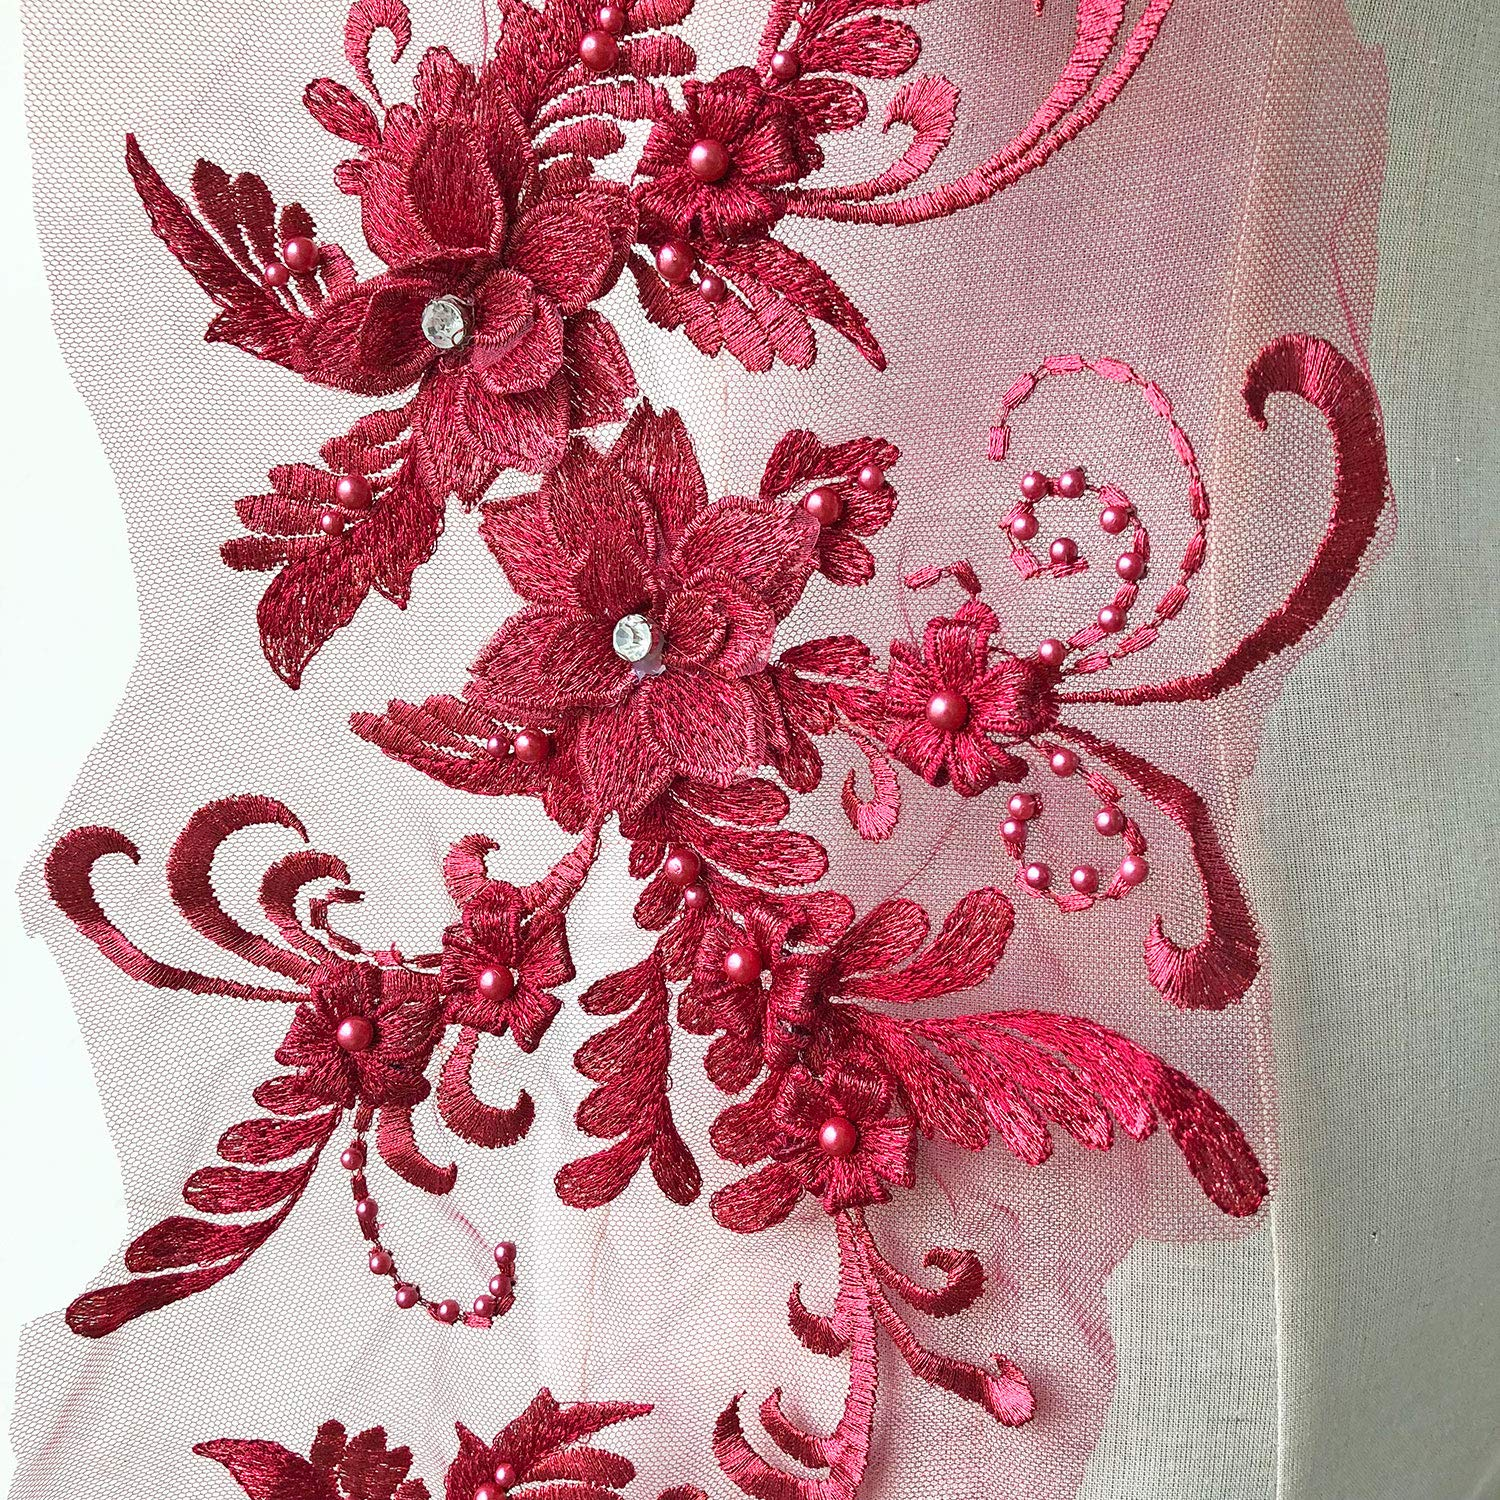 3D Beaded Flower Embroidery Lace Patch Applique Crystal Sewing Lace Motif for Dance Costumes Ballgown Red Color